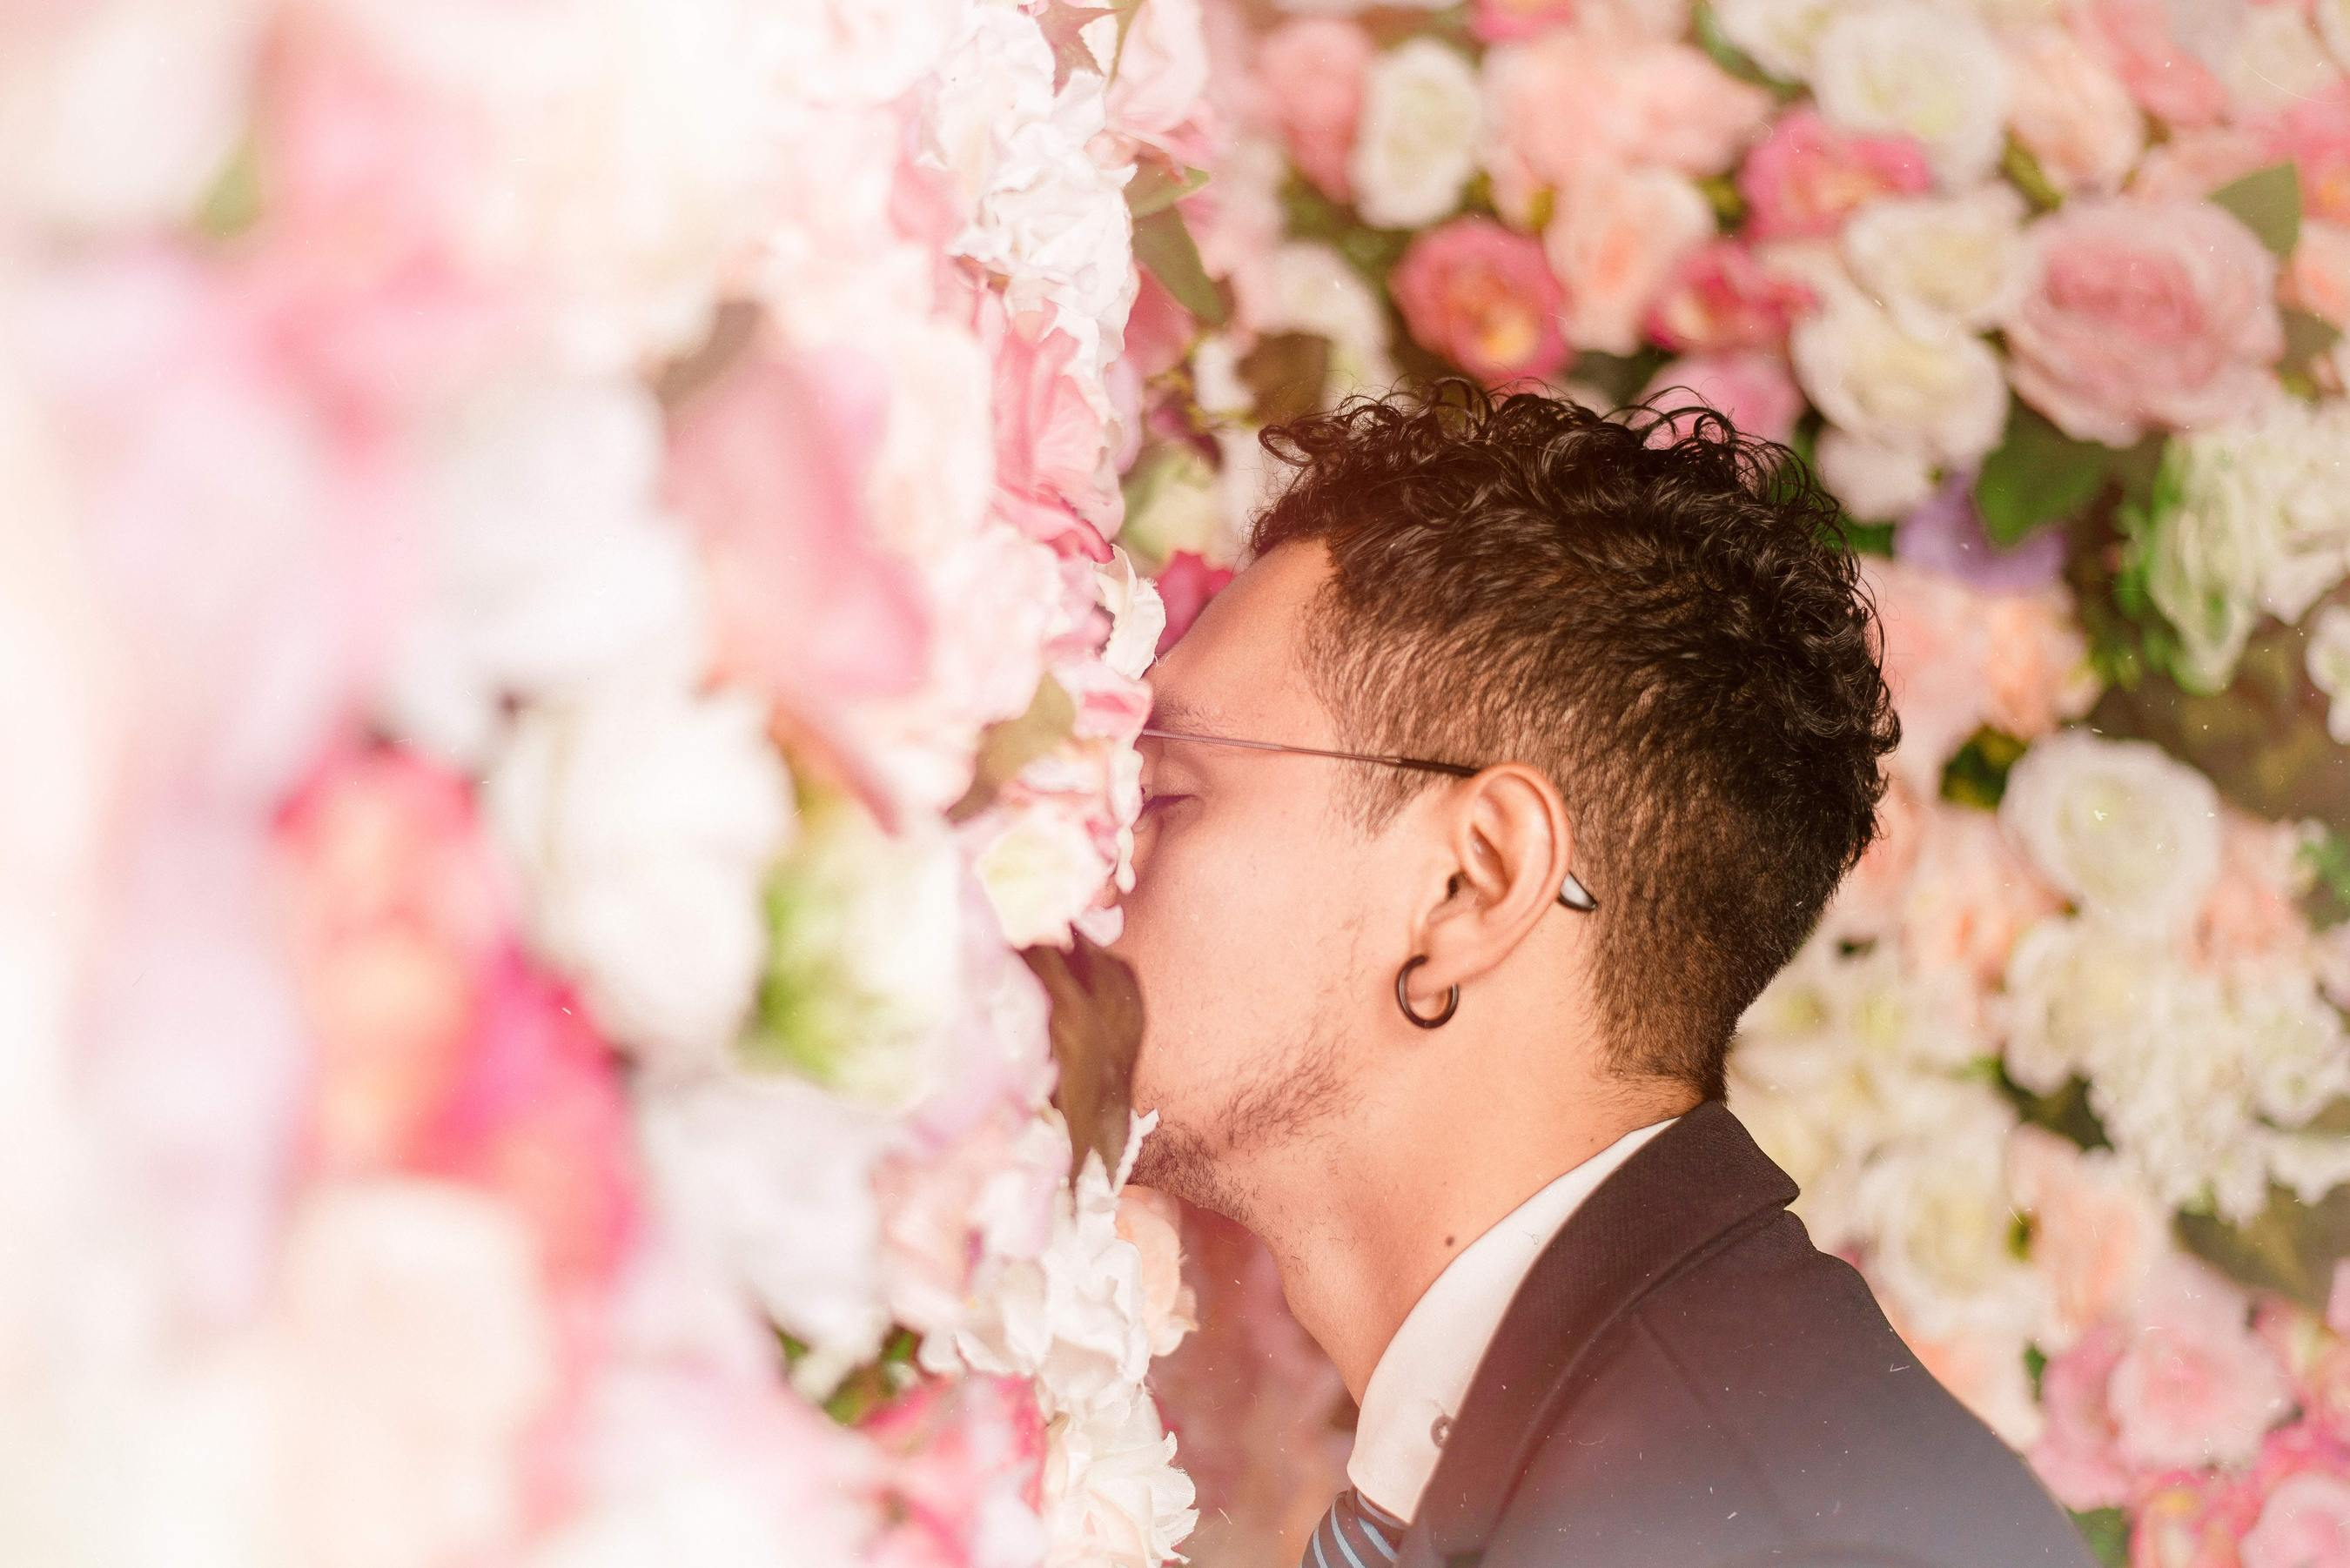 a man with his face in a wall of light pink roses